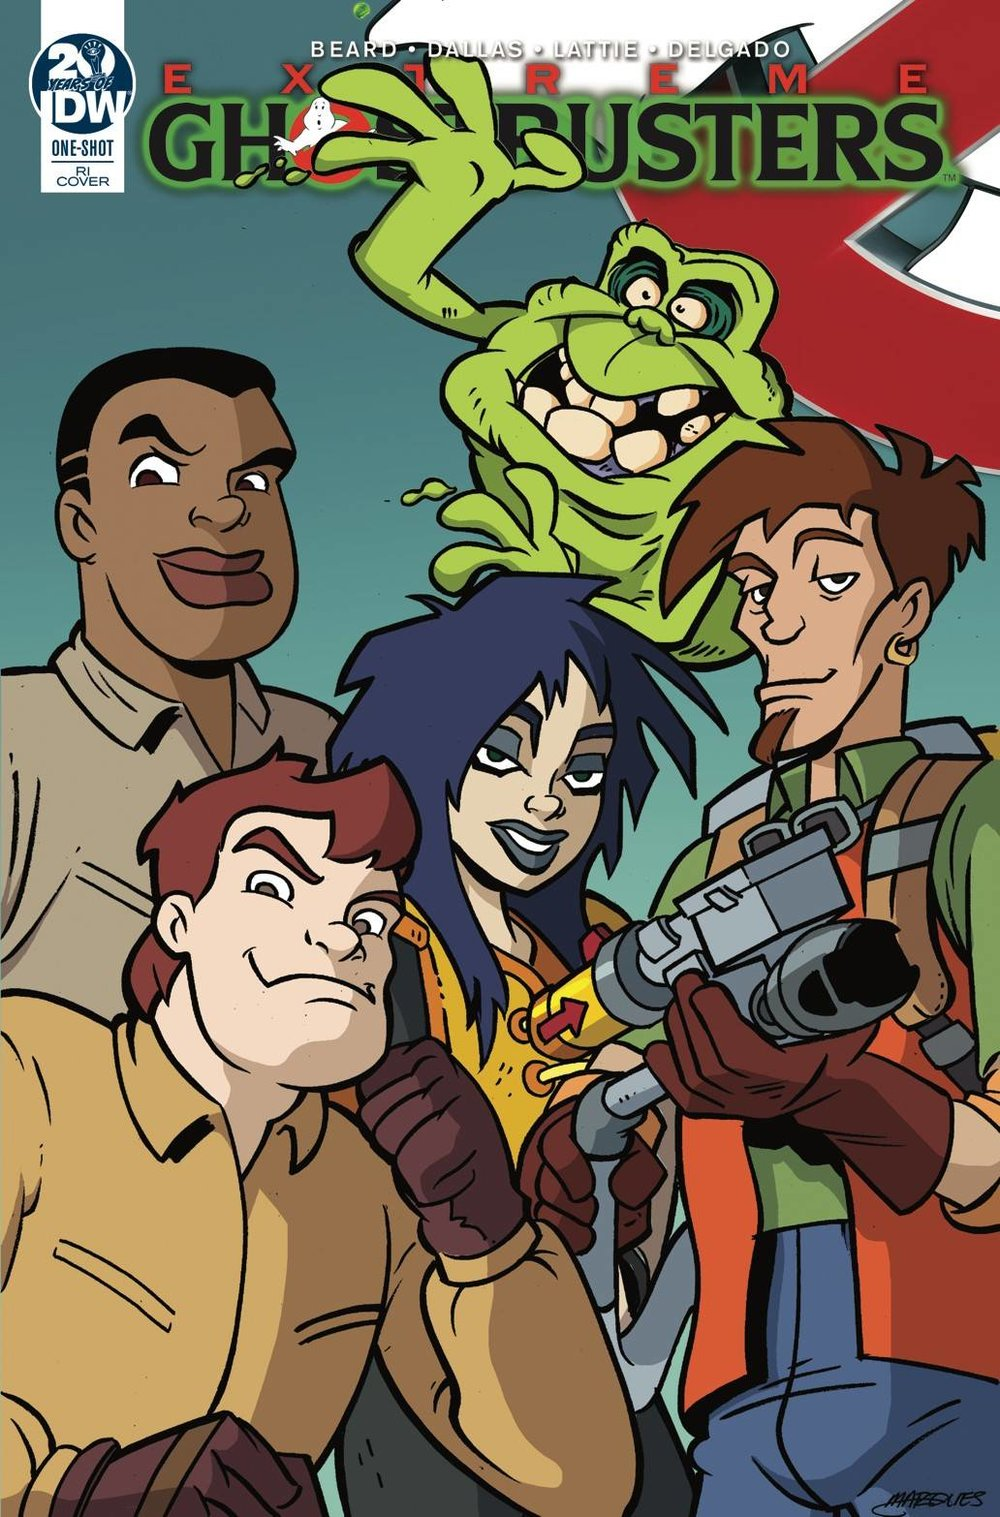 GHOSTBUSTERS 35TH ANNIV EXTREME GHOSTBUSTERS 1 10 COPY INCV MARQUES.jpg